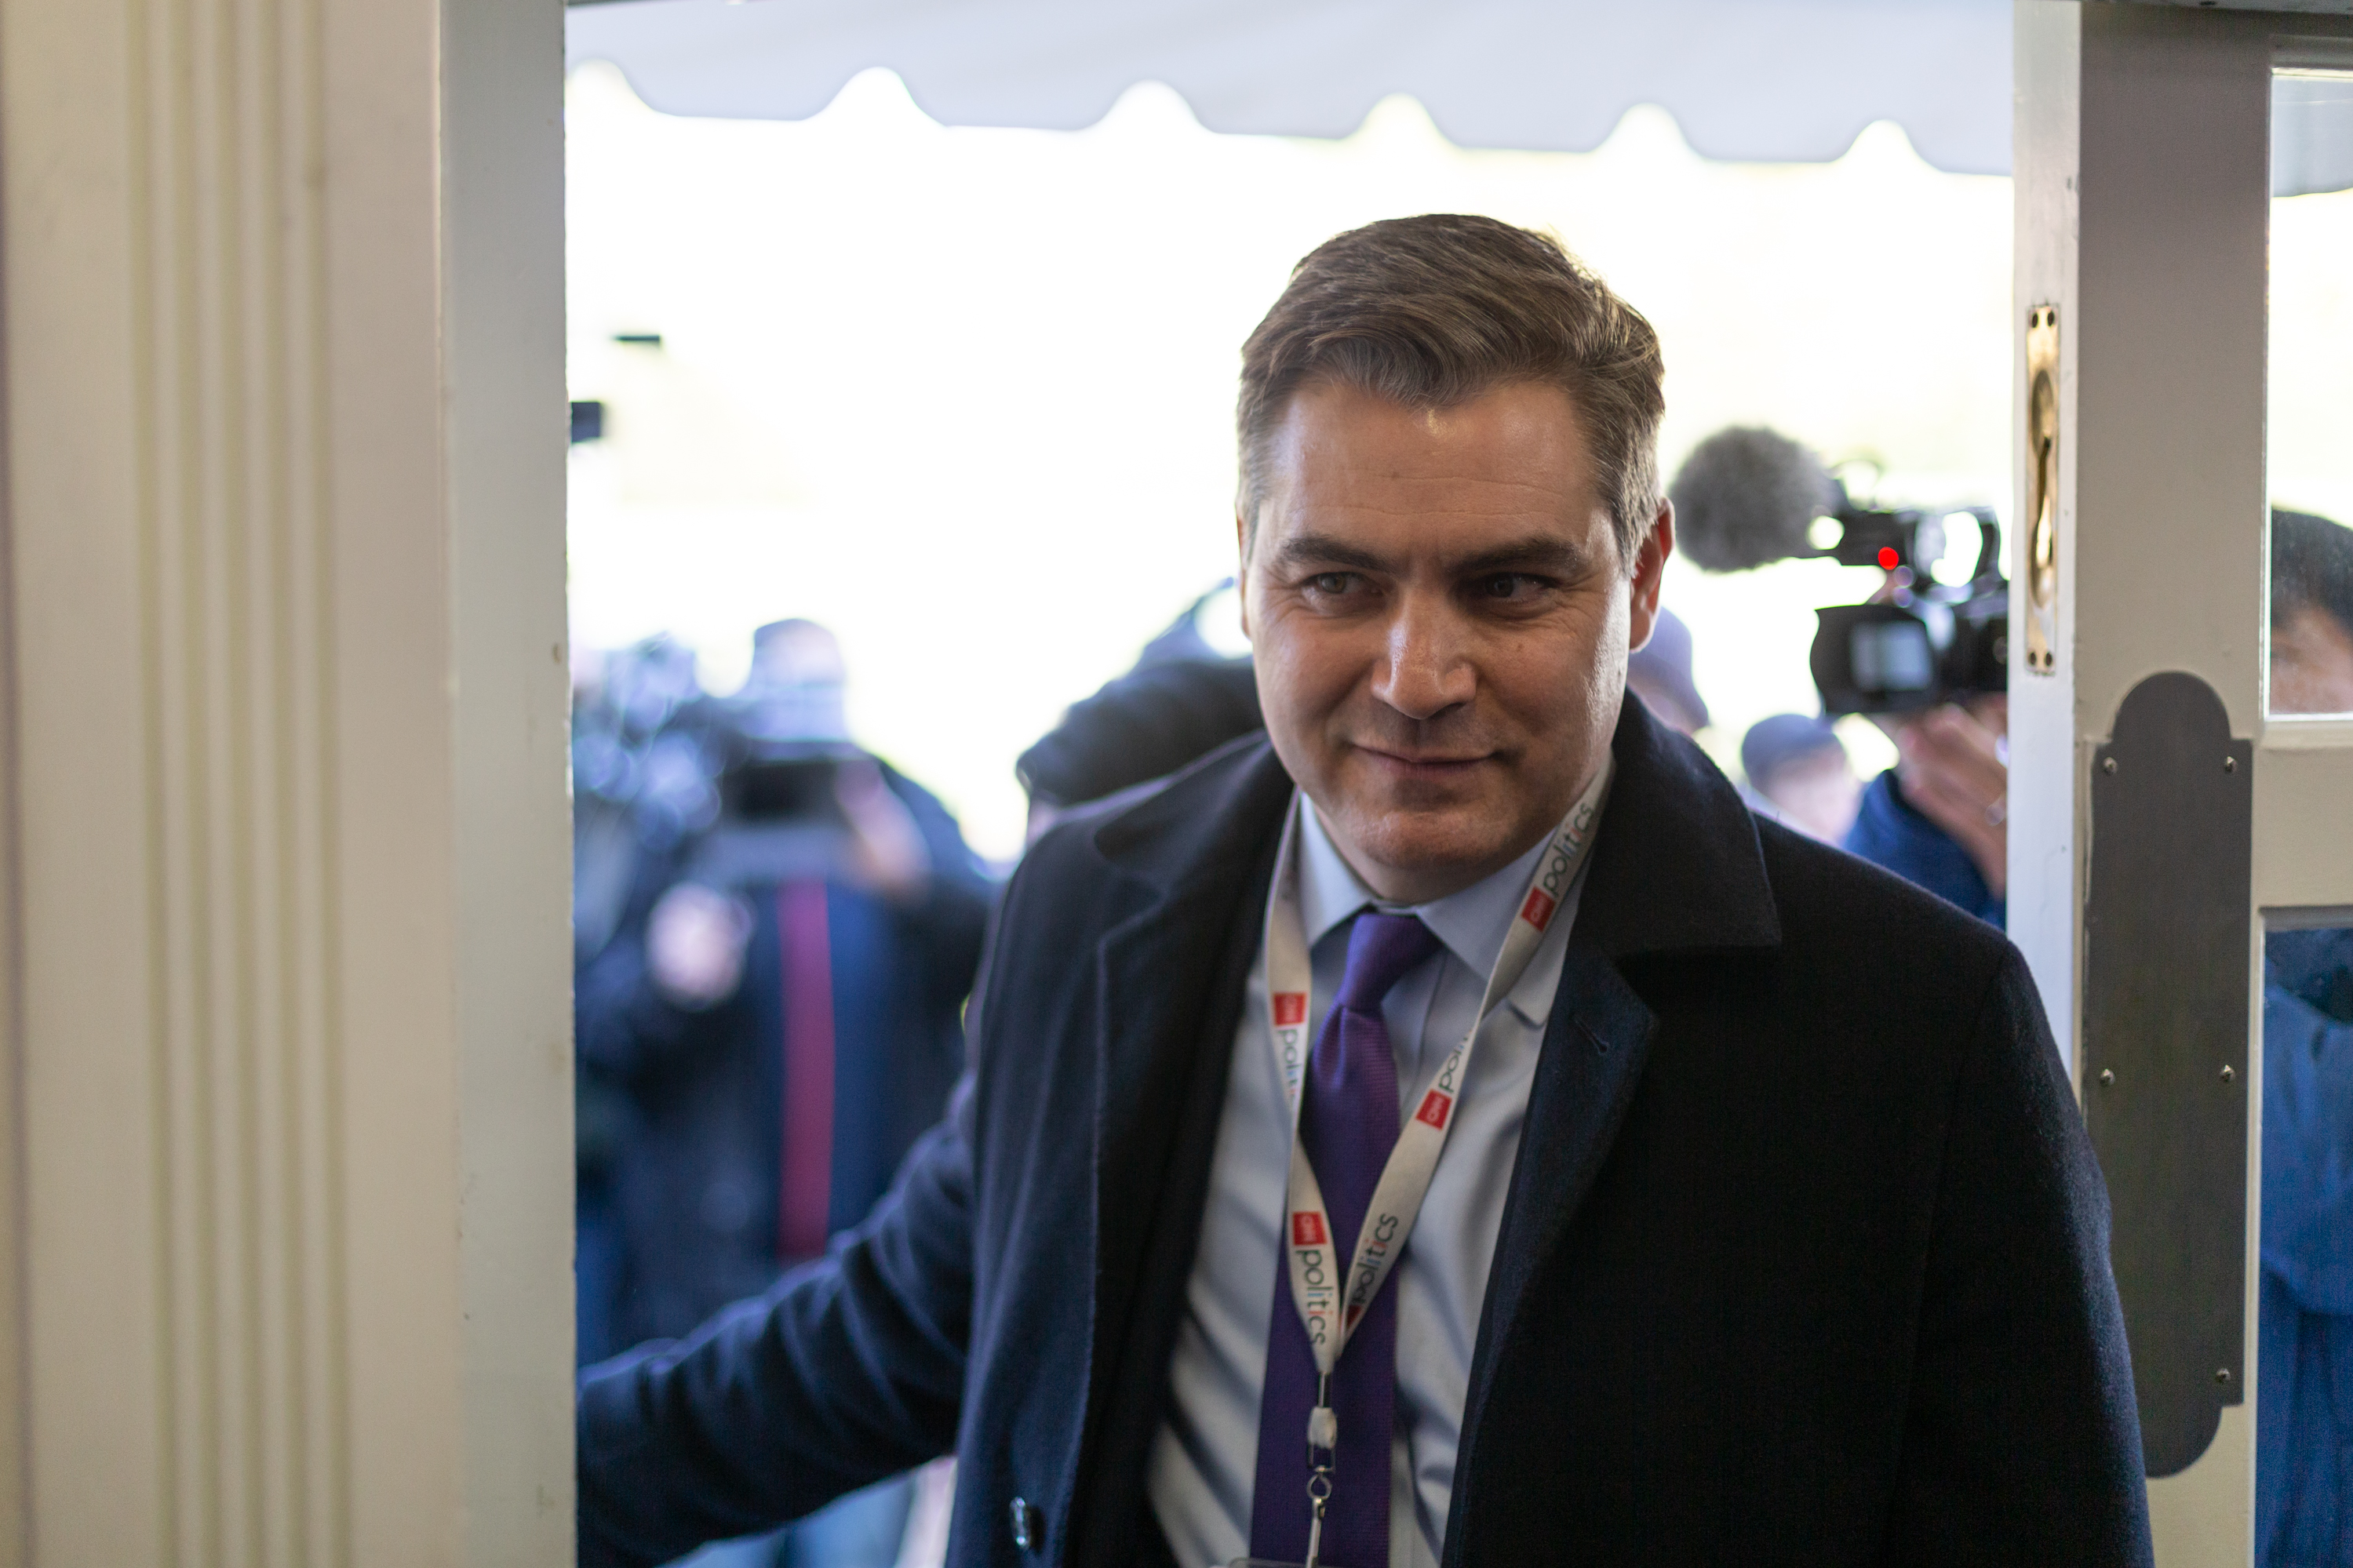 CNN's Jim Acosta's enters the James S. Brady Press Briefing Room of the White House in Washington, D.C., after a judge ordered the Trump Administration to return his press pass. On Friday, November 16, 2018.(Photo by Cheriss May/NurPhoto)